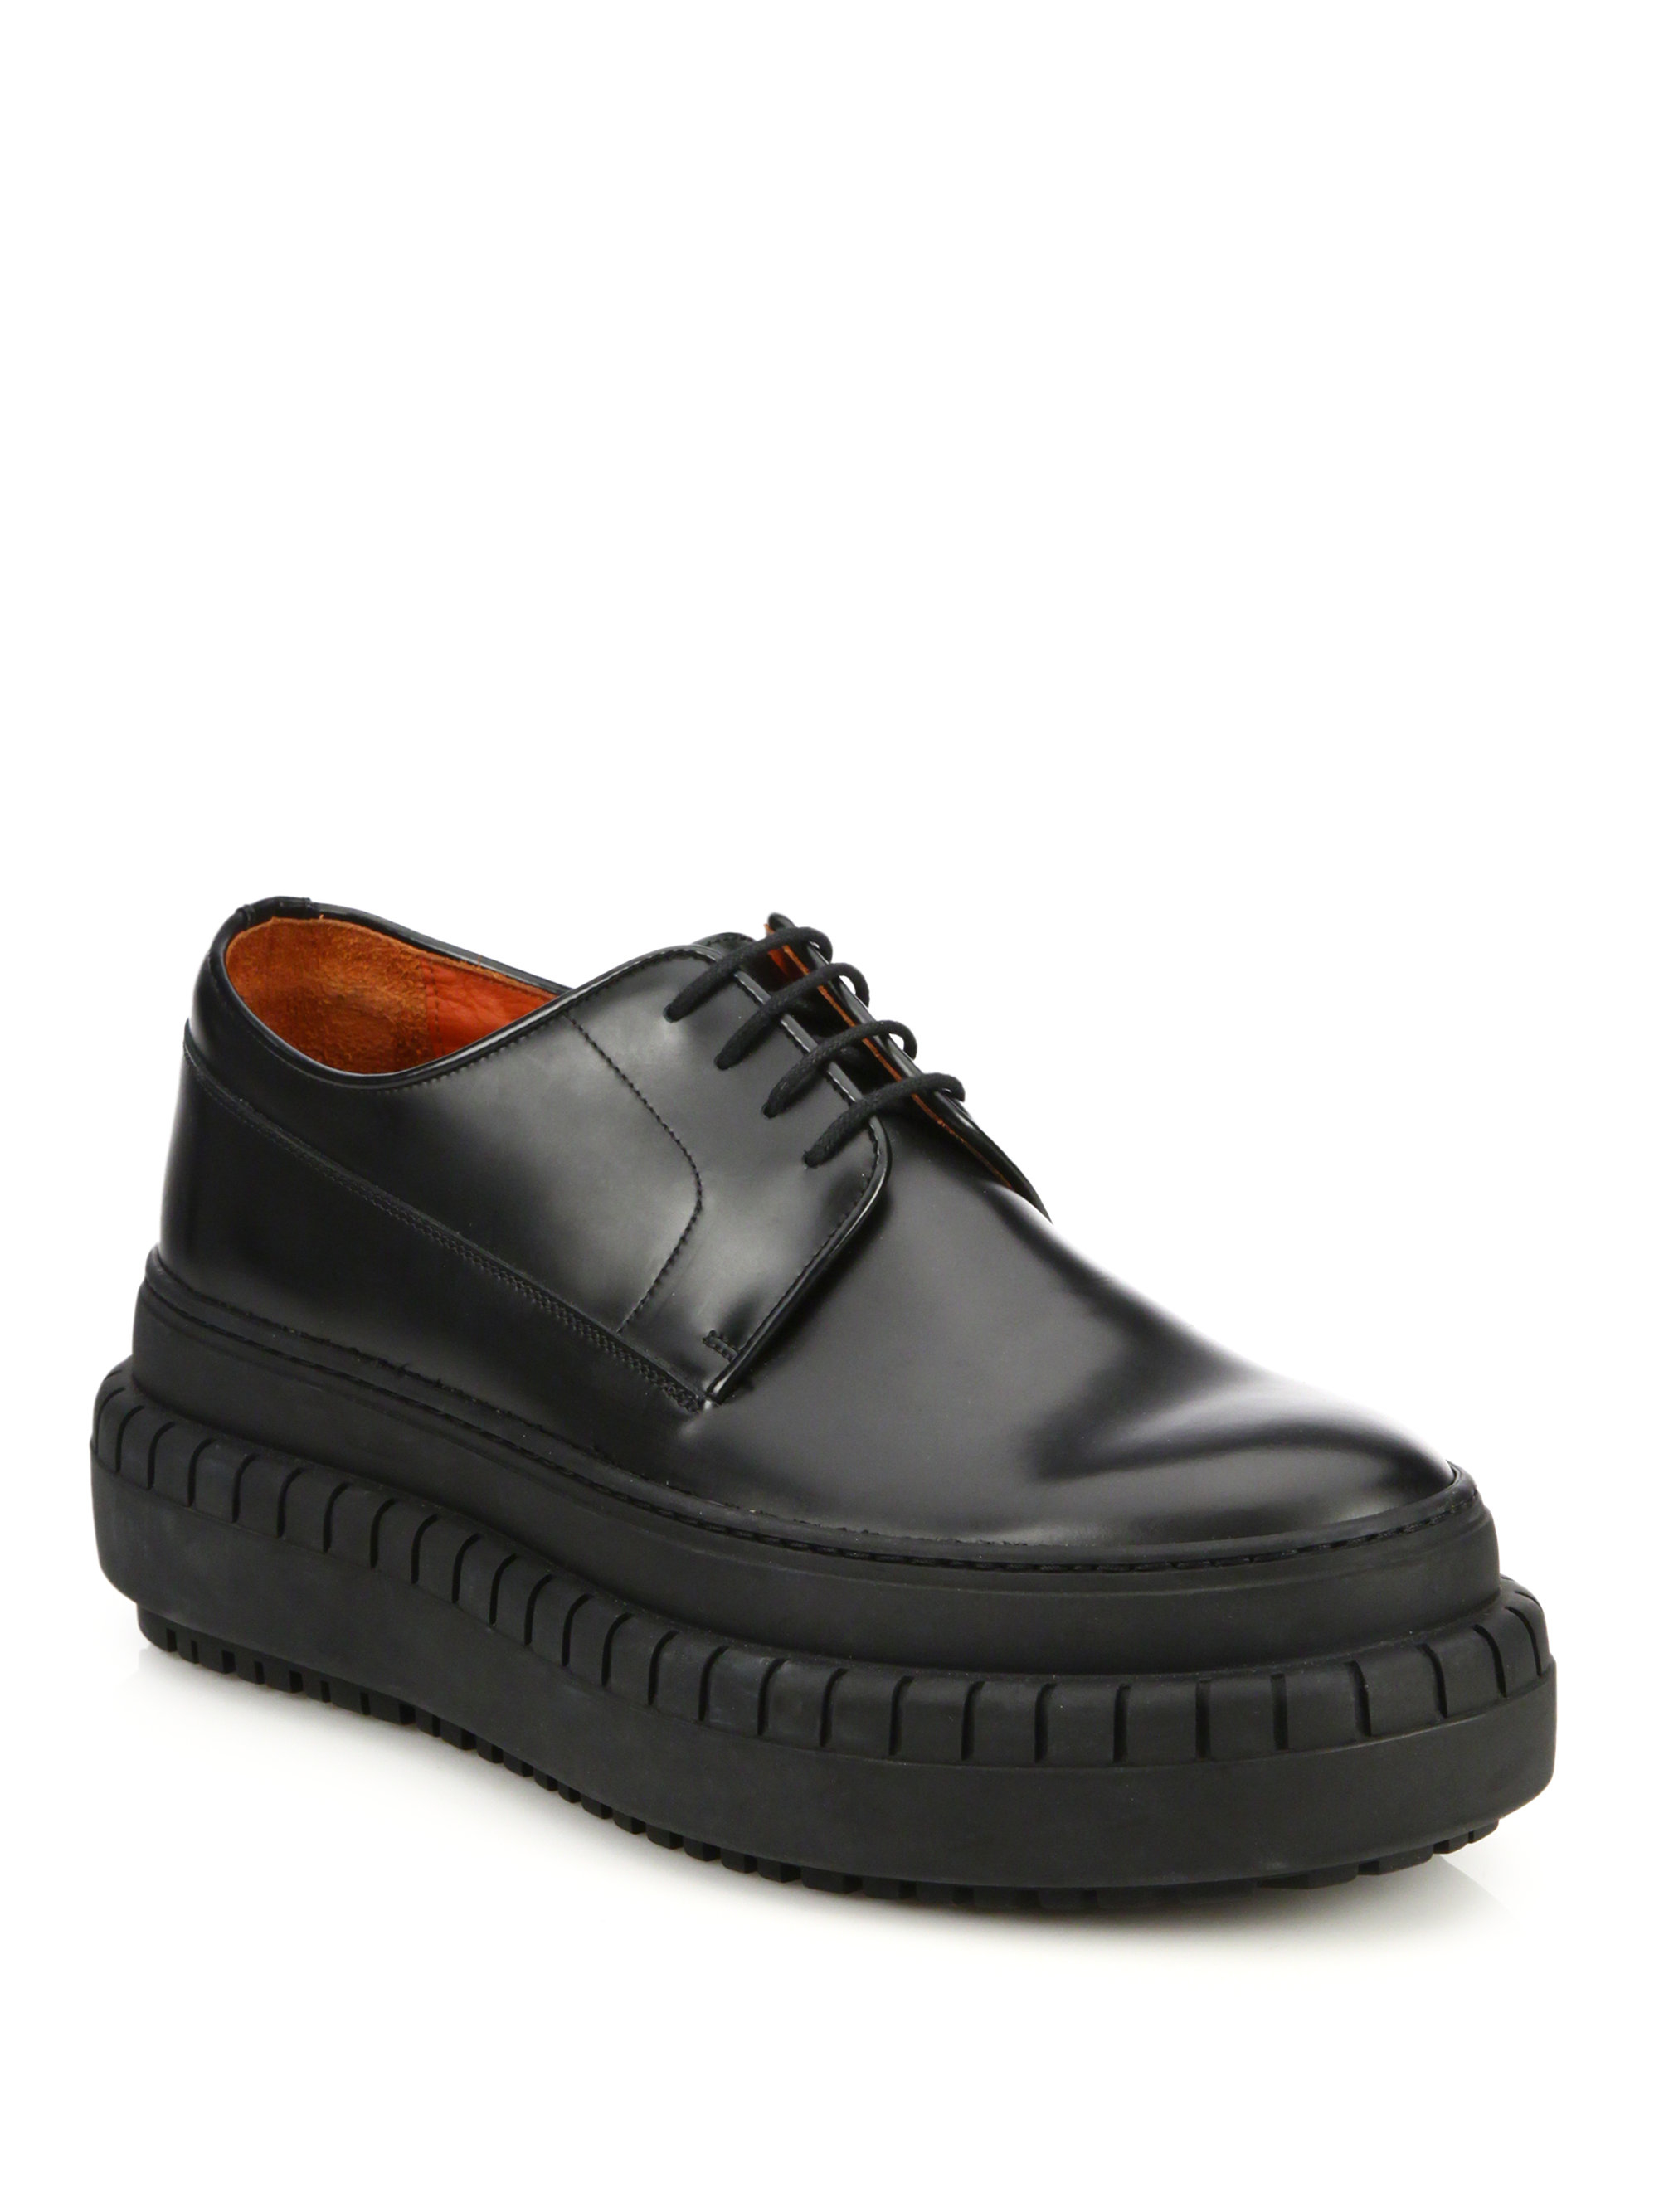 Acne Studios Hover Derby Leather Boots In Black For Men Lyst